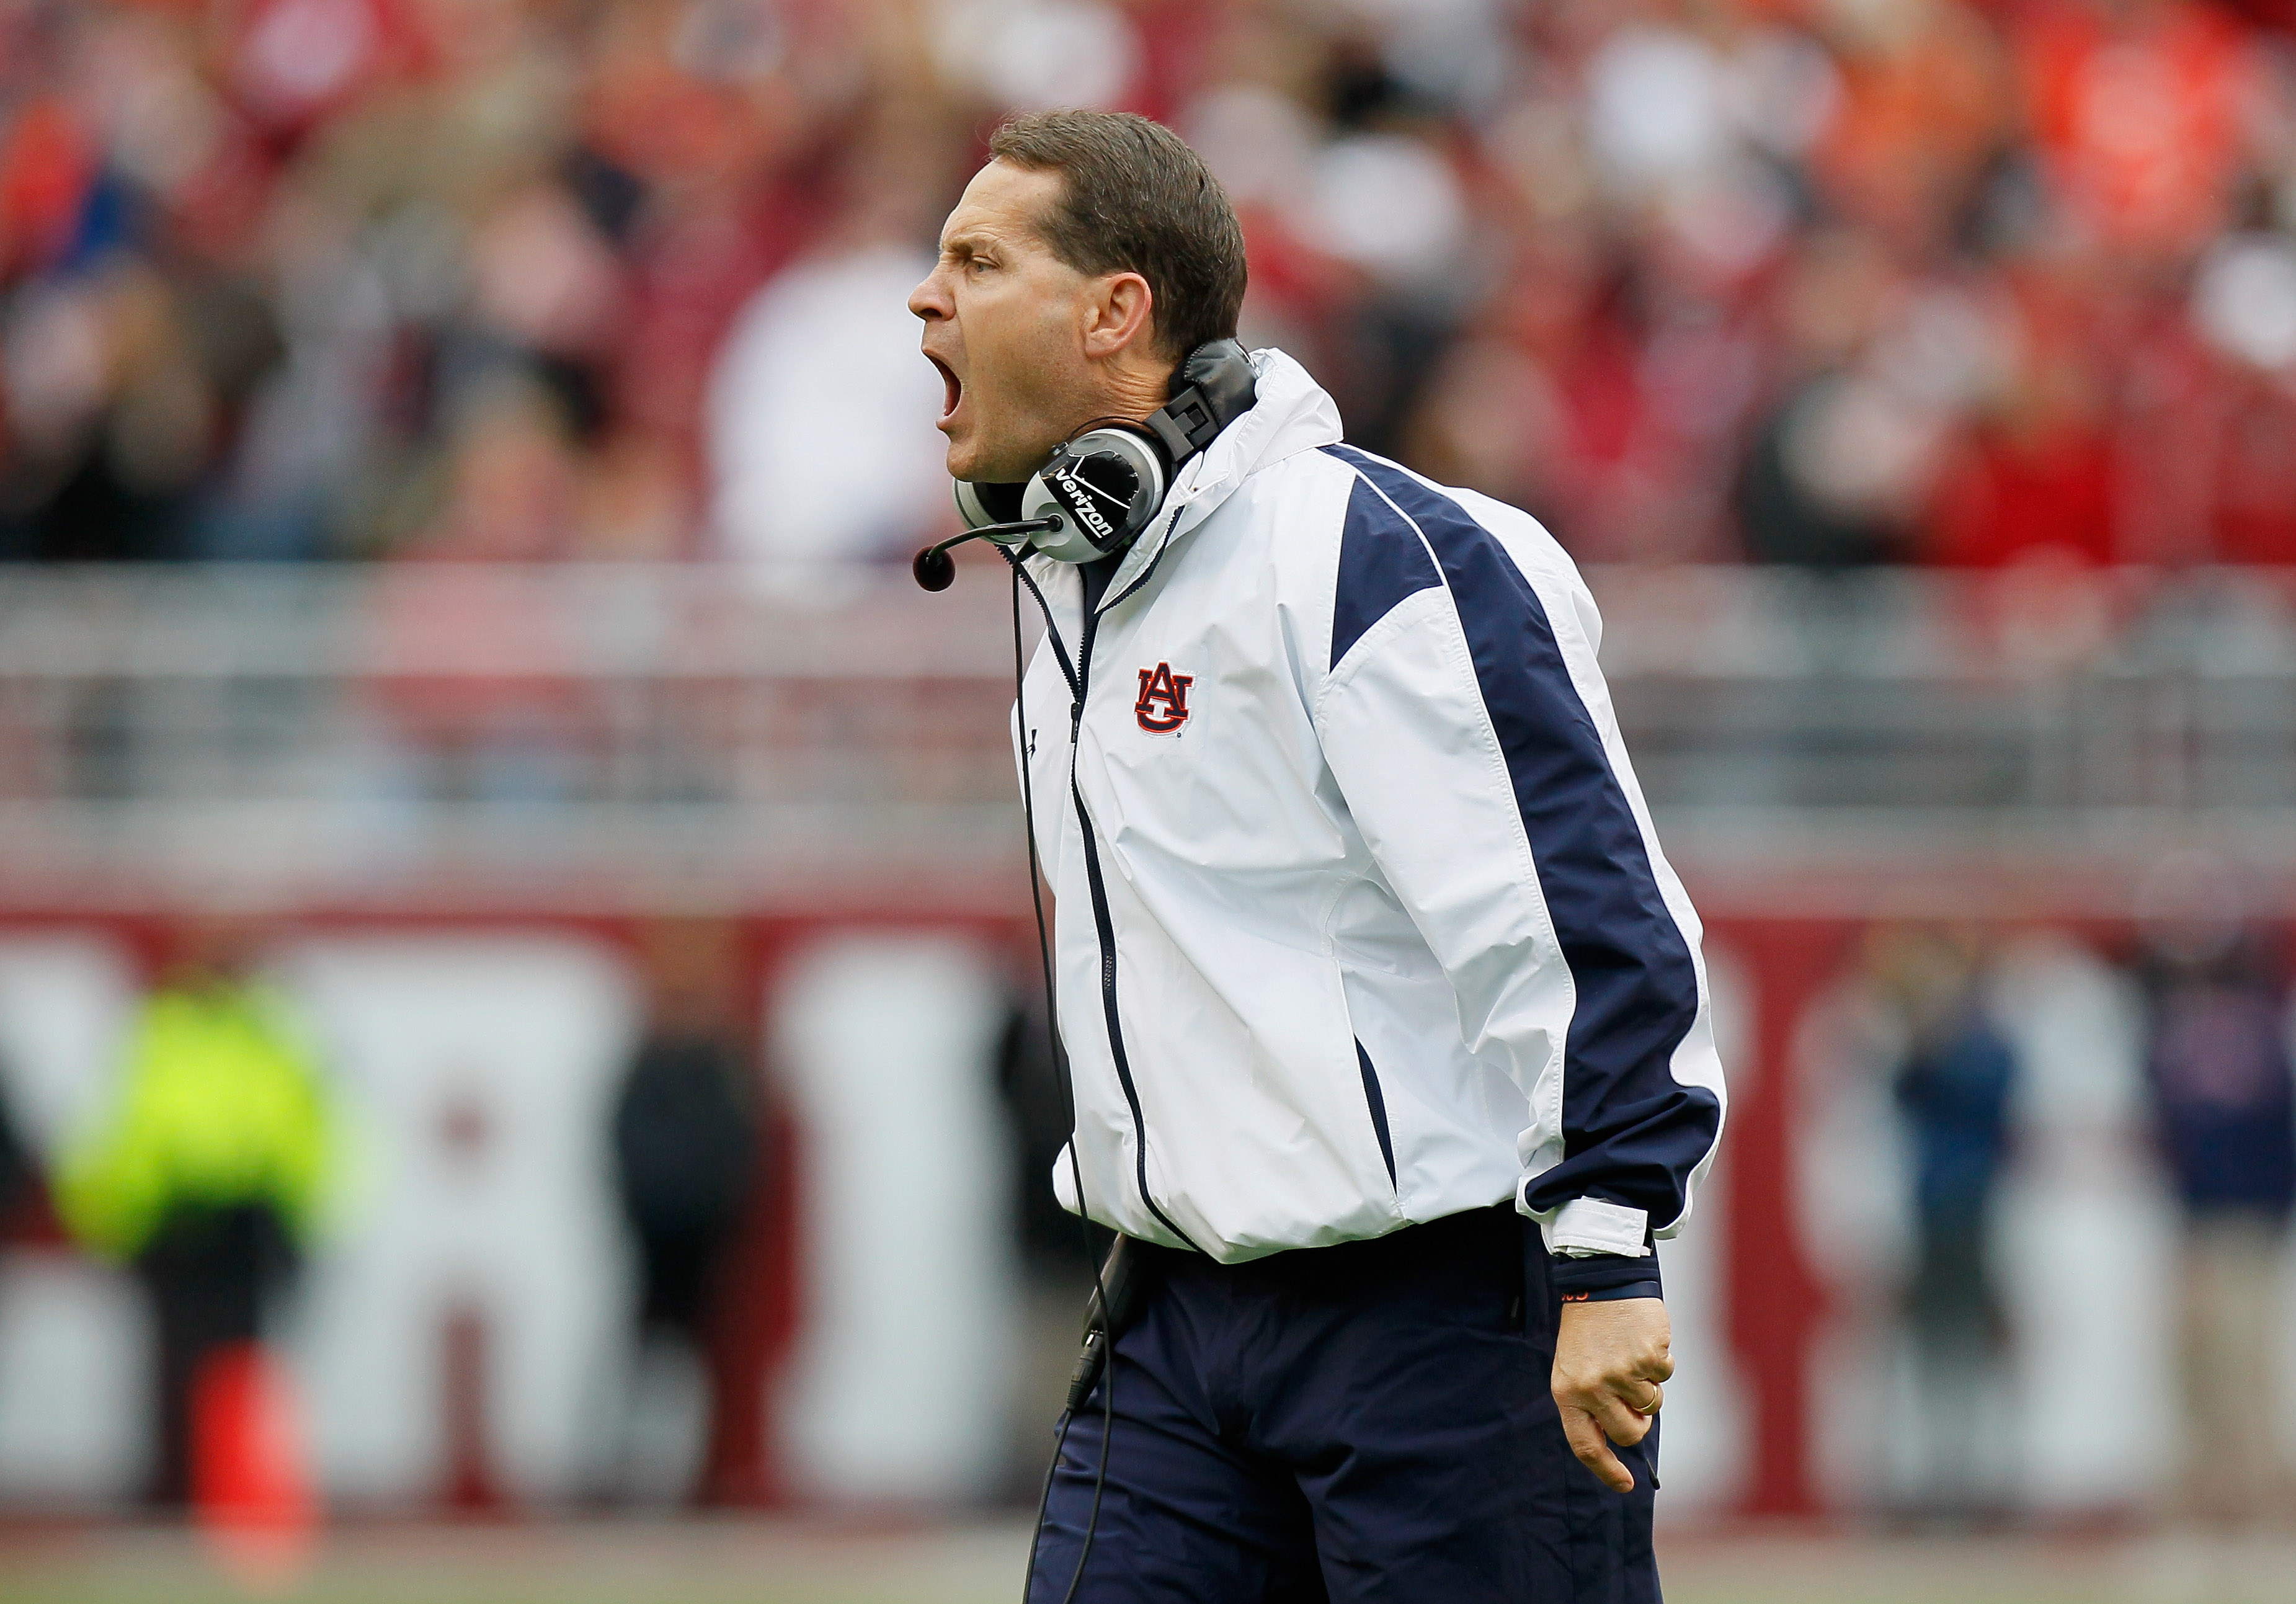 TUSCALOOSA, AL - NOVEMBER 26:  Head coach Gene Chizik of the Auburn Tigers yells to his defense during the game against the Alabama Crimson Tide at Bryant-Denny Stadium on November 26, 2010 in Tuscaloosa, Alabama.  (Photo by Kevin C. Cox/Getty Images)